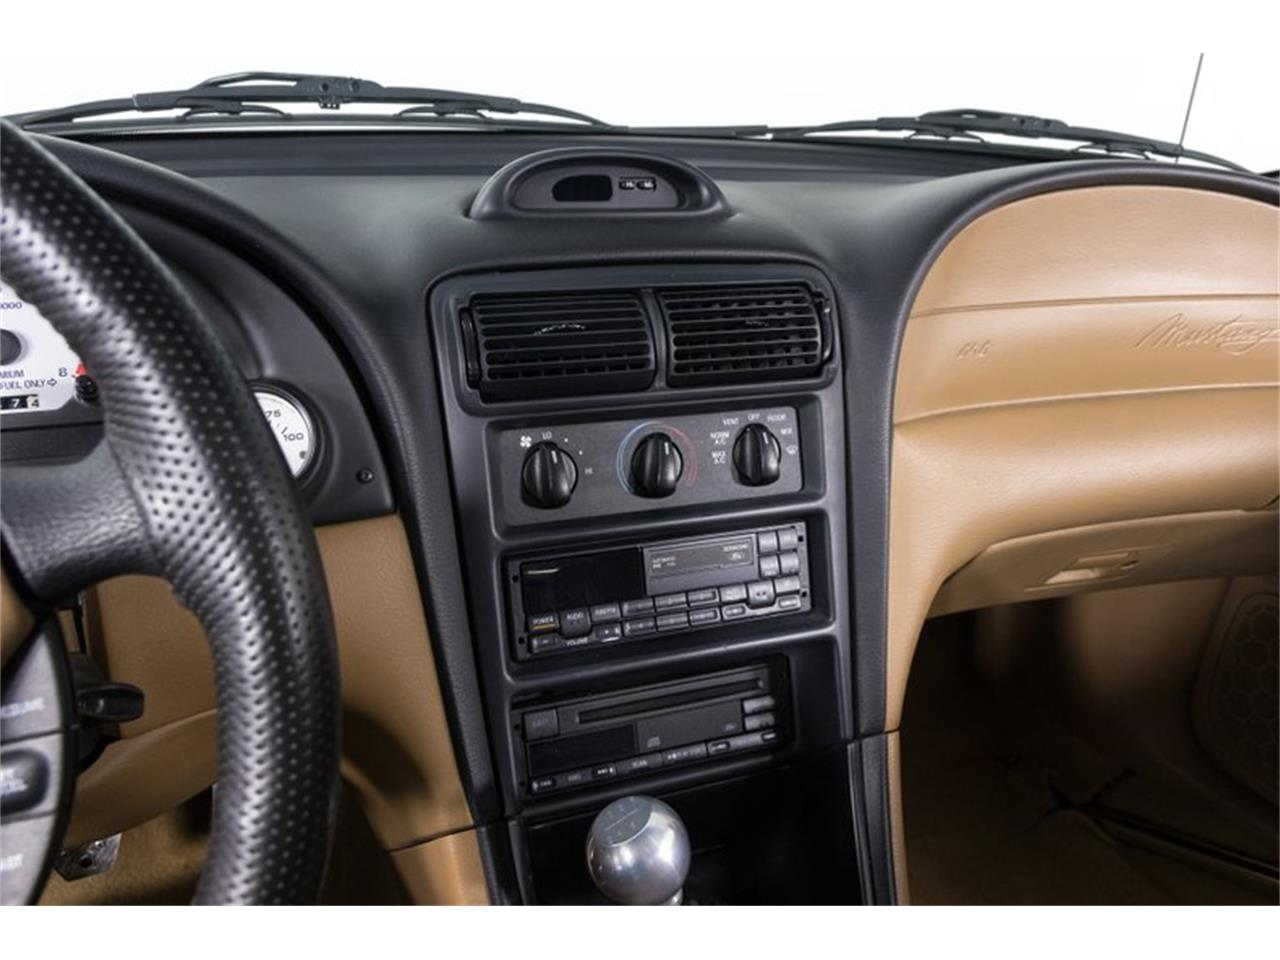 Large Picture of '97 Ford Mustang - $16,995.00 Offered by Fast Lane Classic Cars Inc. - Q83F